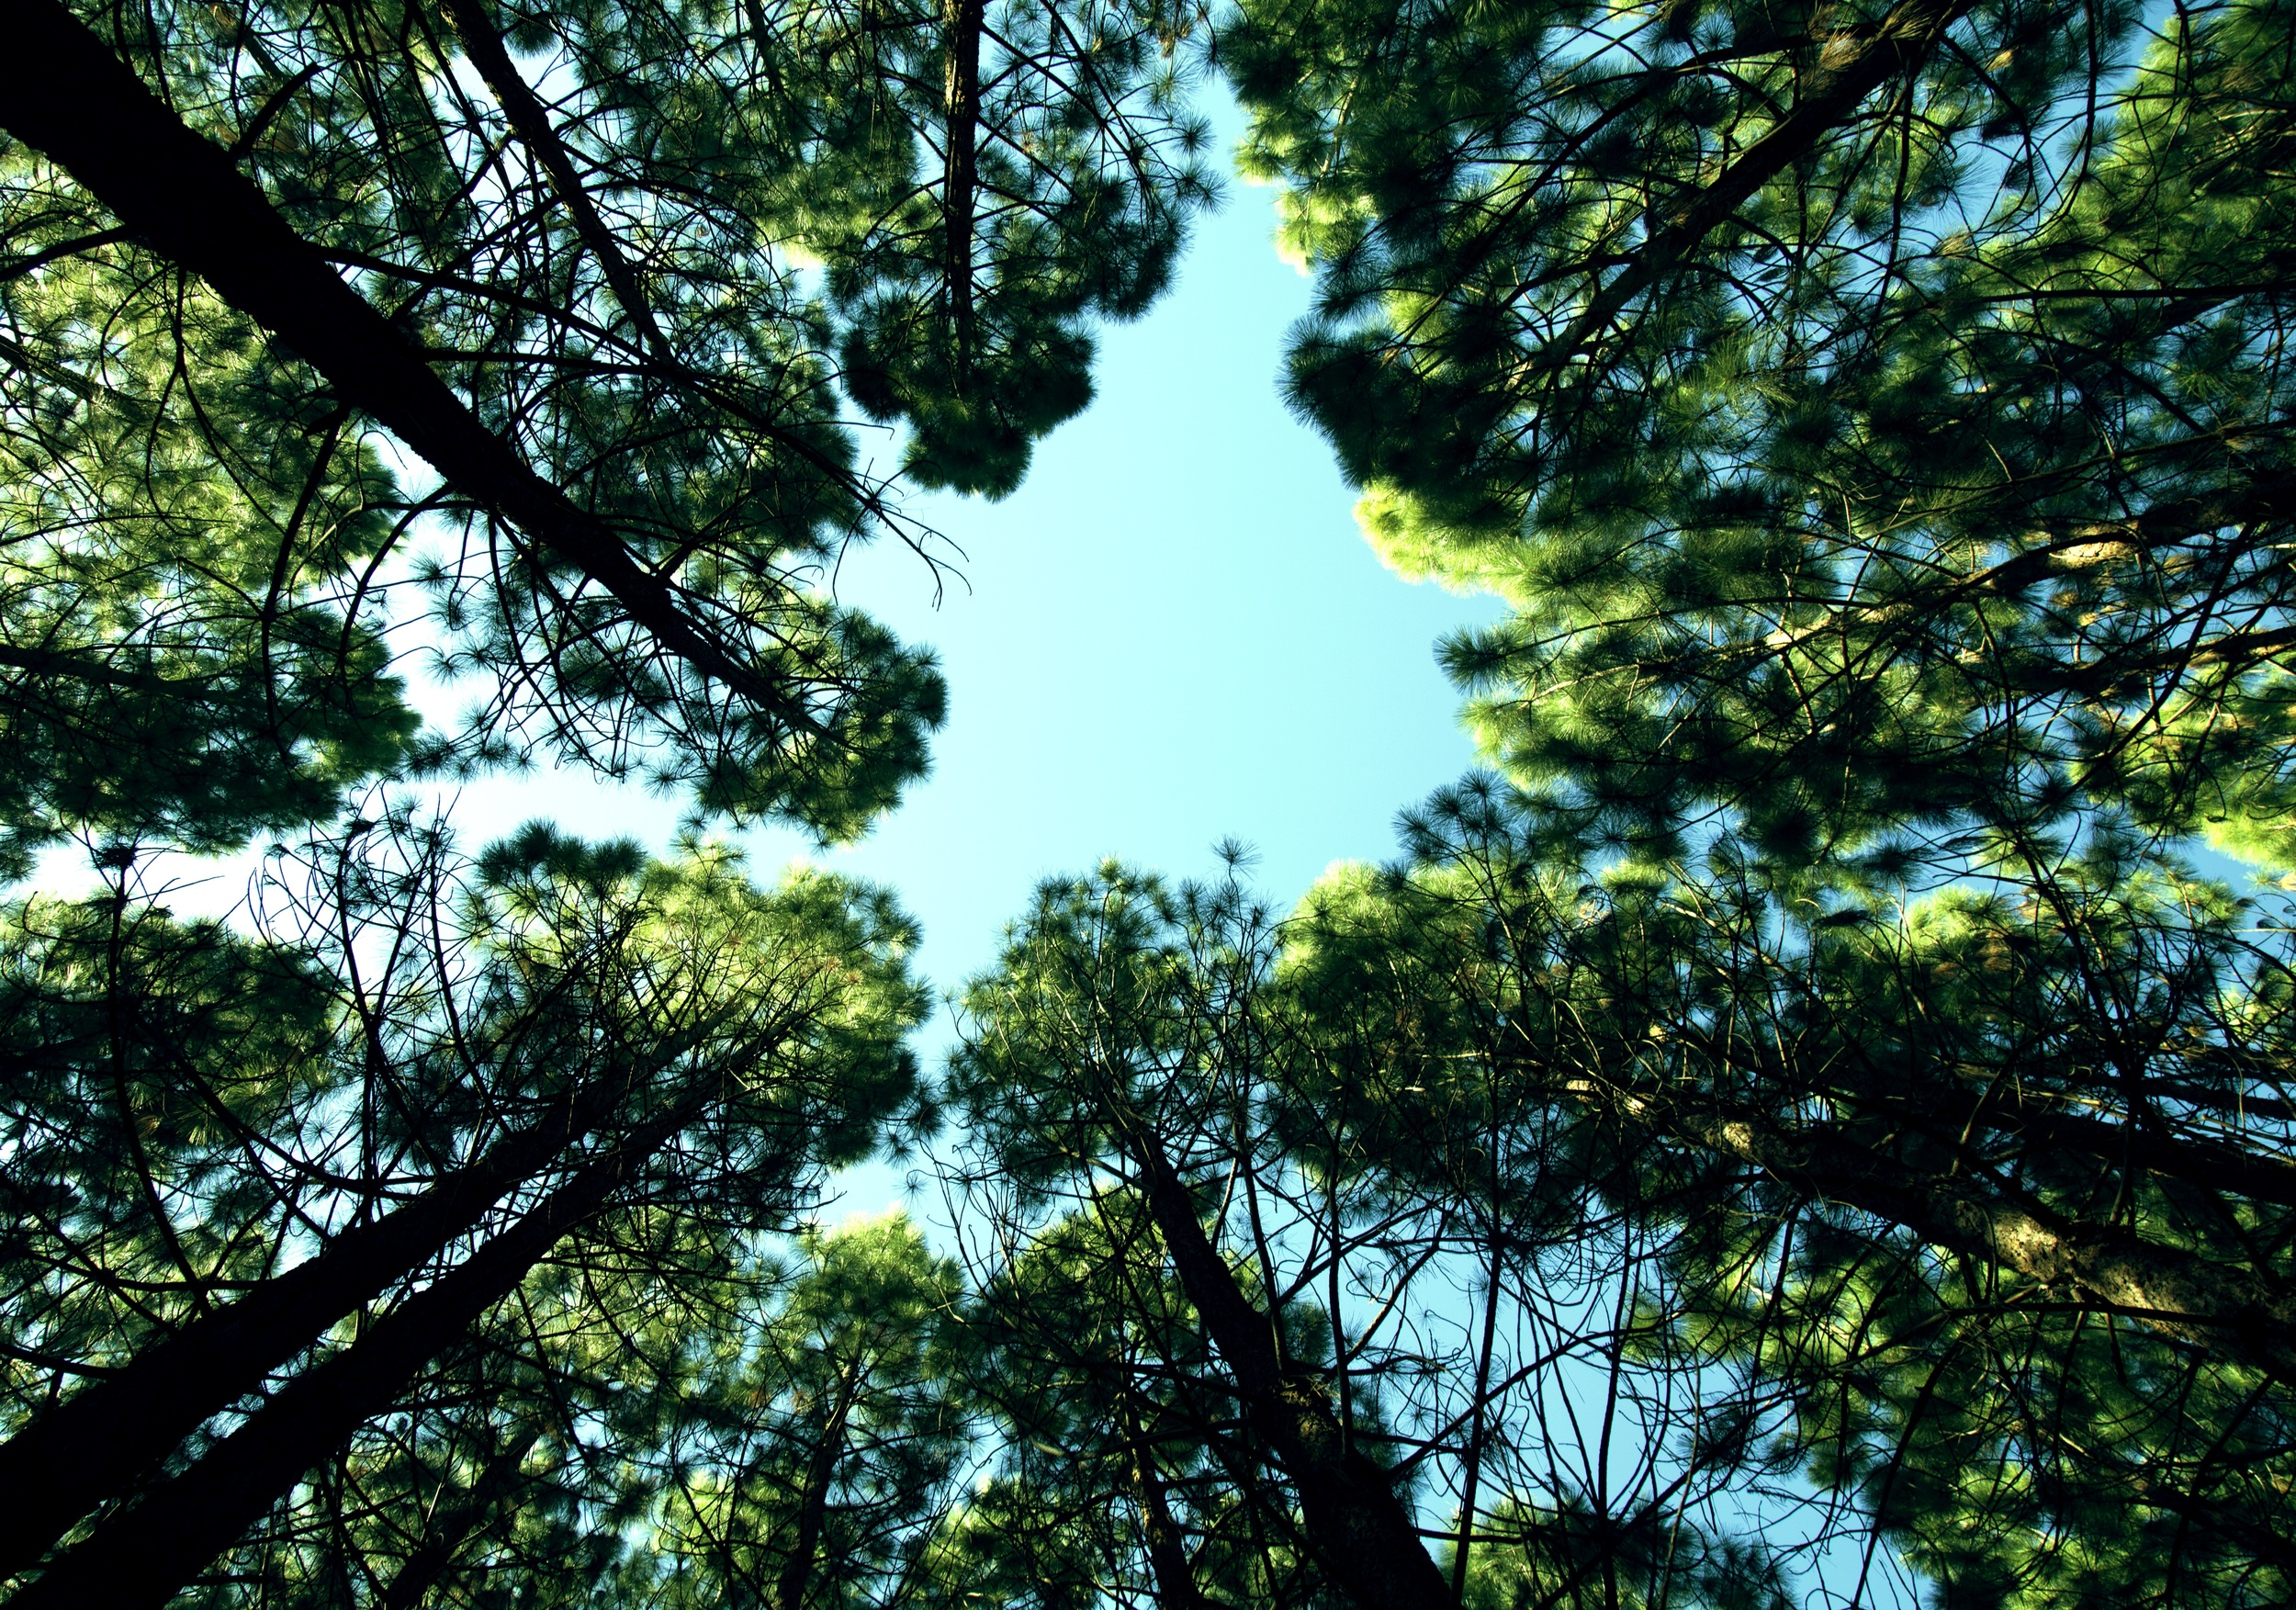 2015-10-Life-of-Pix-free-stock-photos-trees-sky-forest-mikewilson.jpeg